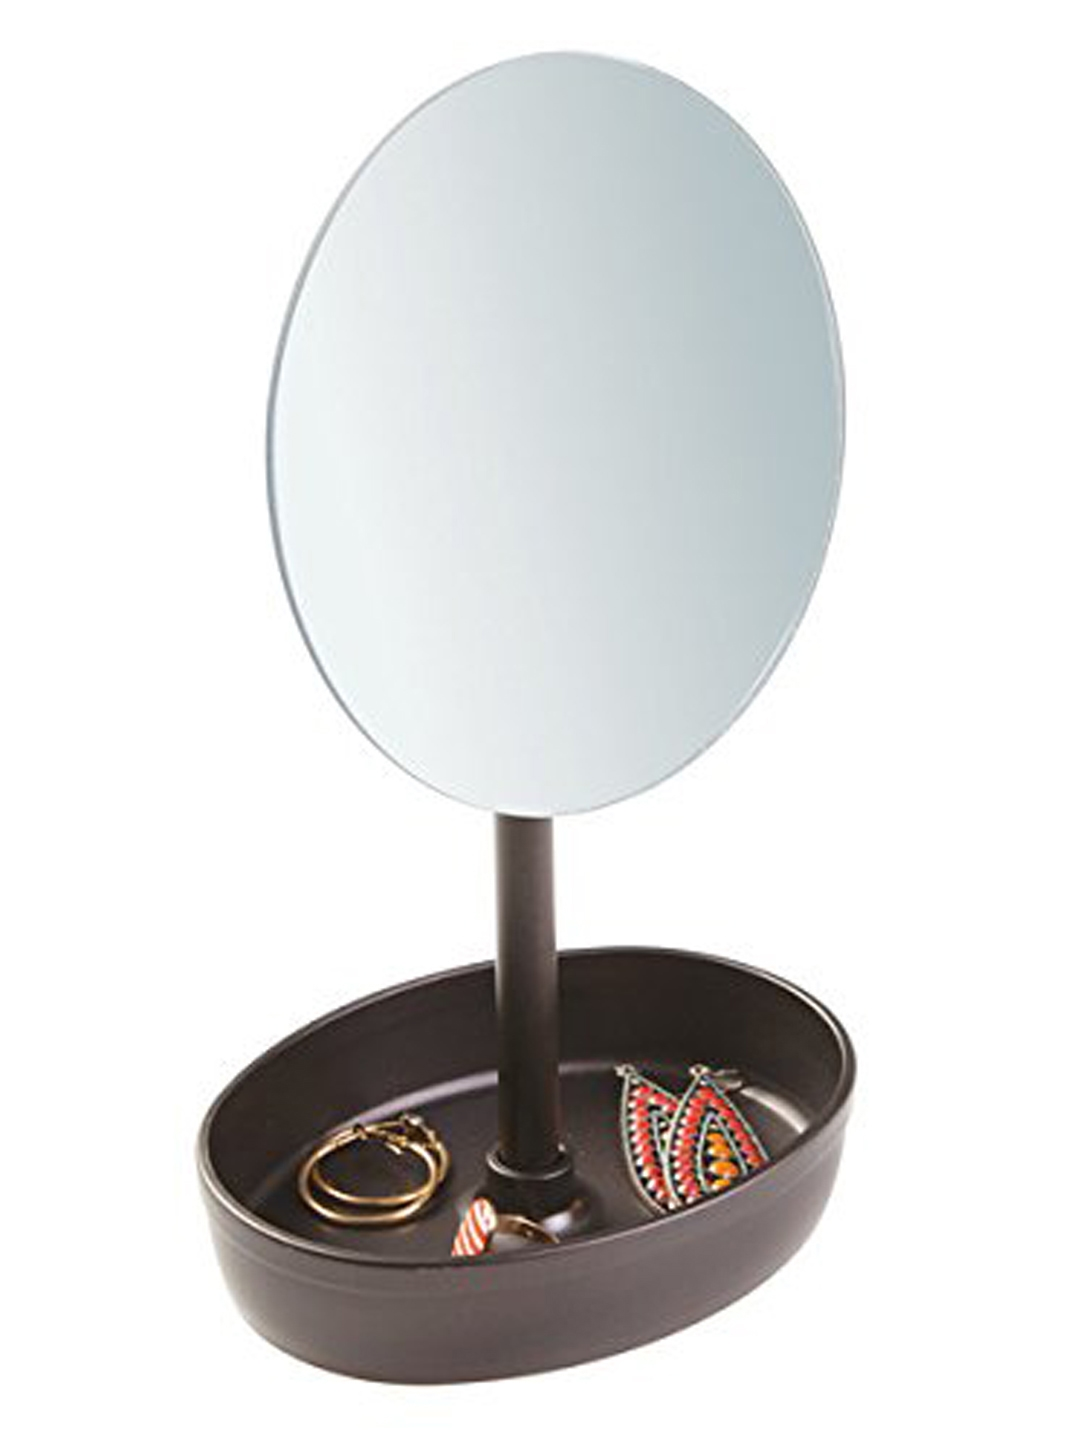 How To Buy Mirrors Online